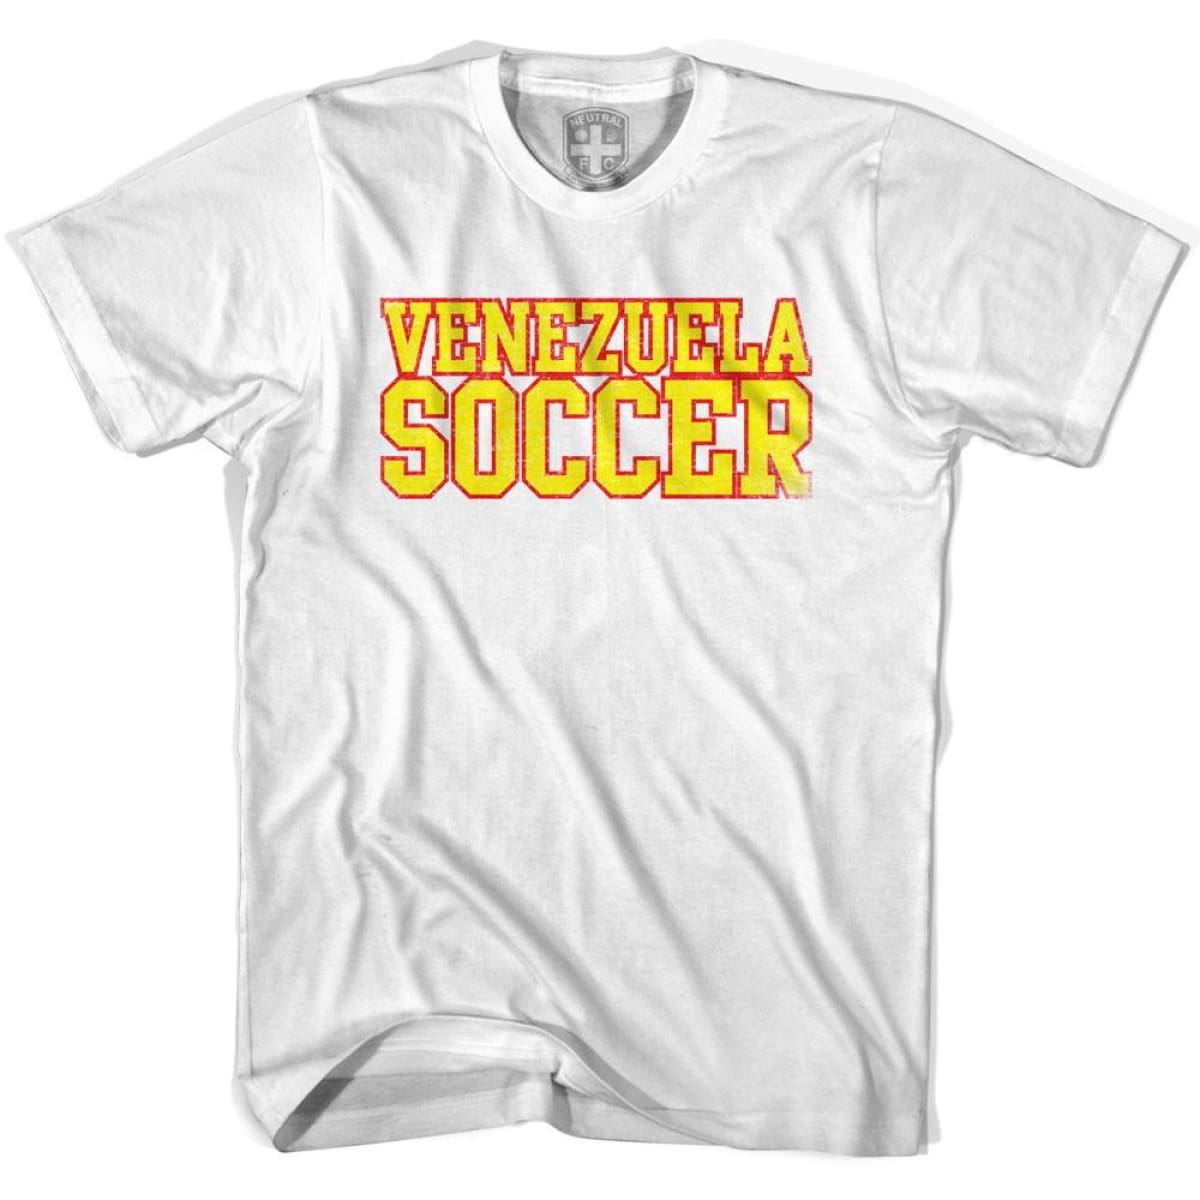 Venezuela Soccer Nations World Cup T-shirt - White / Youth X-Small - Ultras Soccer T-shirts